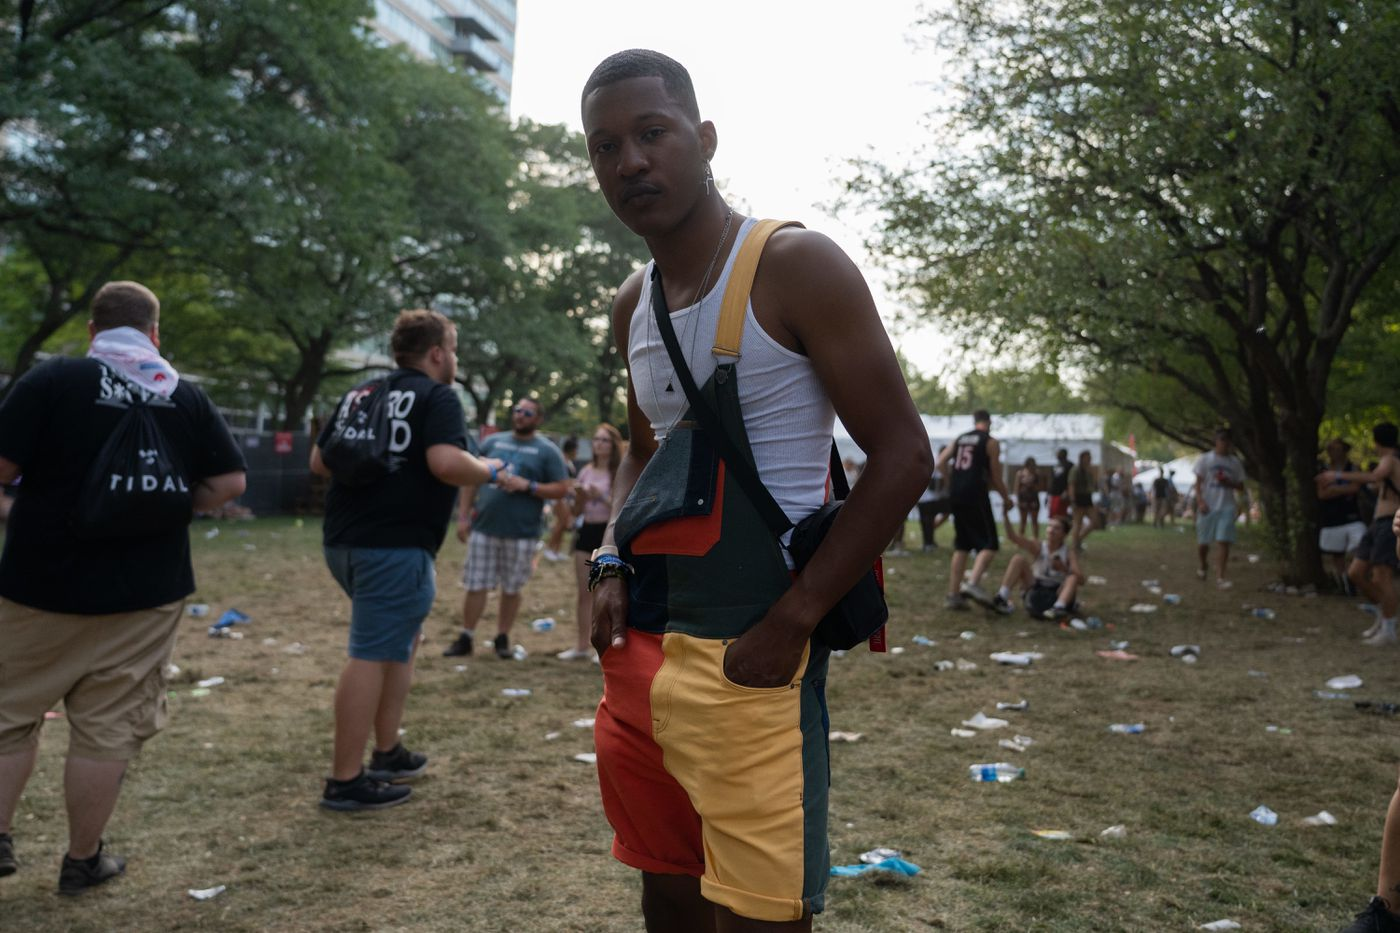 """Diyante Brown, 22 from Chicago wearing his outfit from H&M and is """" here to see Travis Scott and have a great time"""" at Made in America Festival on Benjamin Franklin Parkway in Center City, Philadelphia on Saturday, August 31, 2019."""